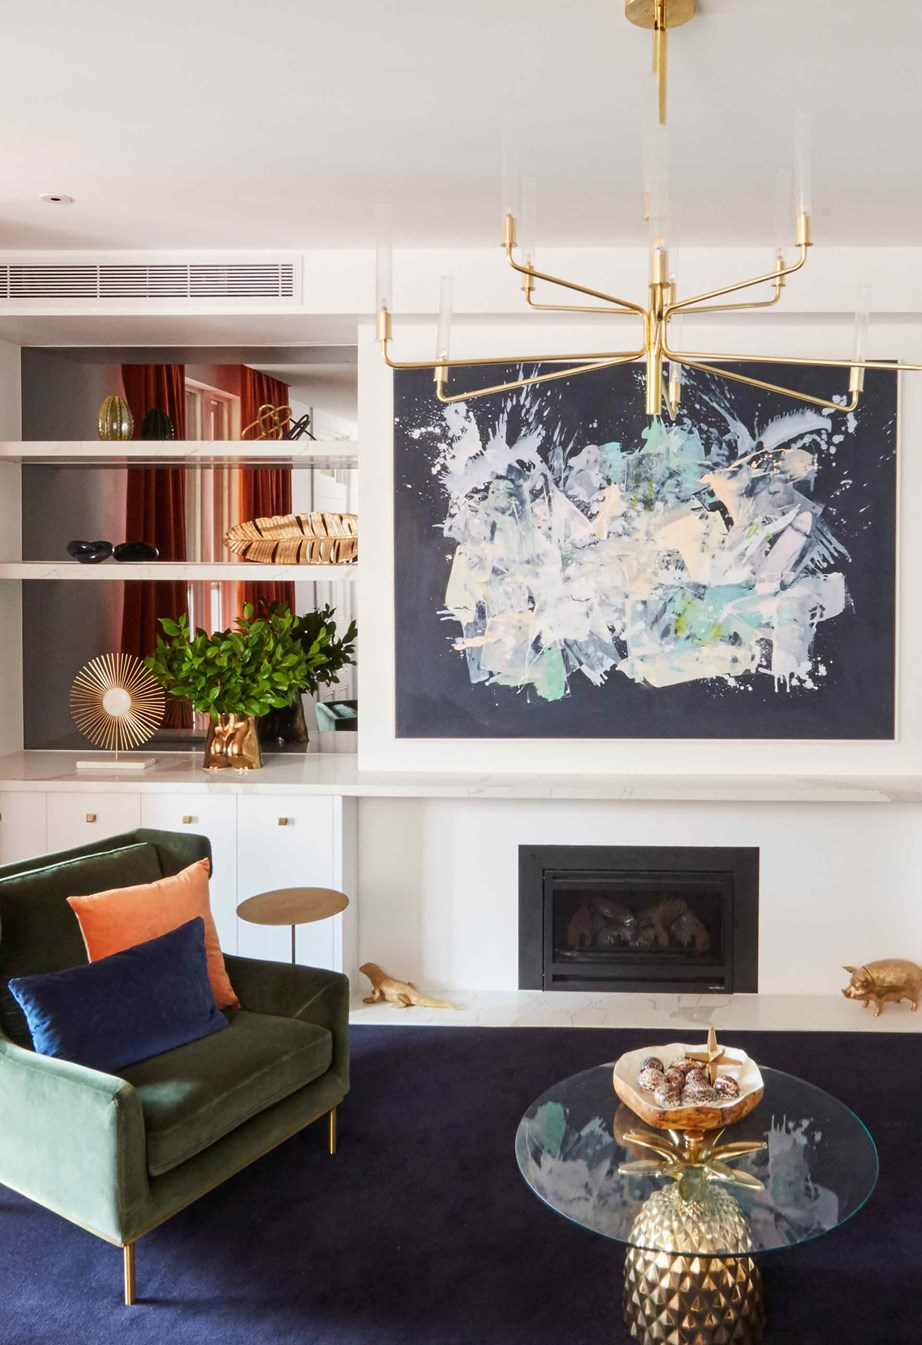 Mitch and Mark's formal living room oozes Hollywood glamour and a mid-century luxe vibe.